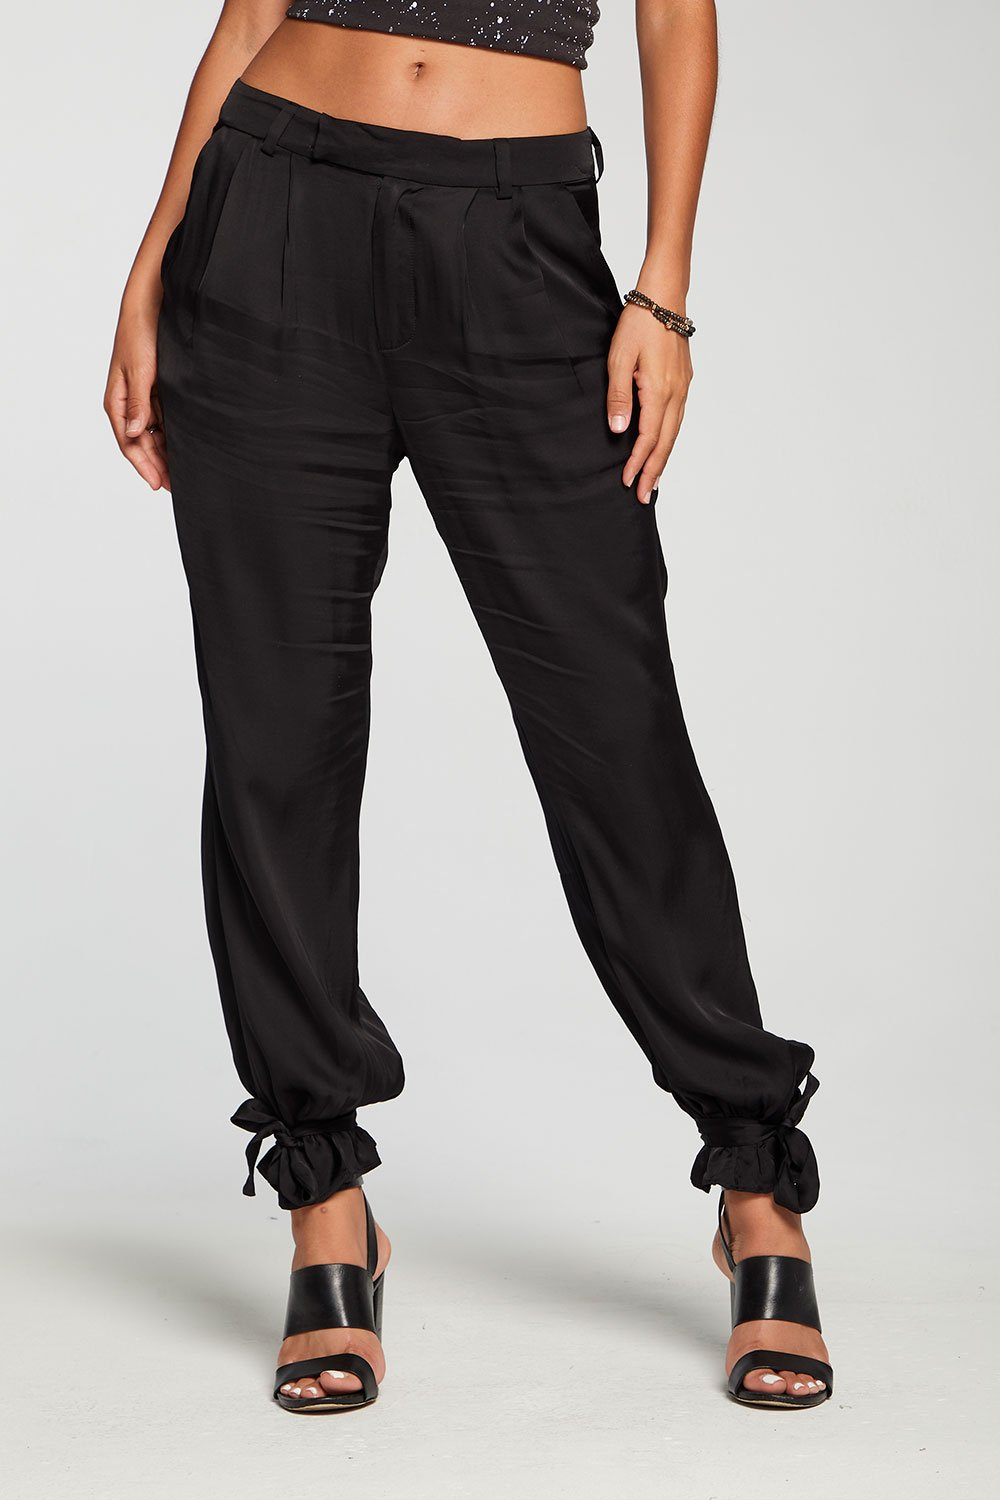 Chaser | SILKY BASICS TAPERED TIE ANKLE PANT